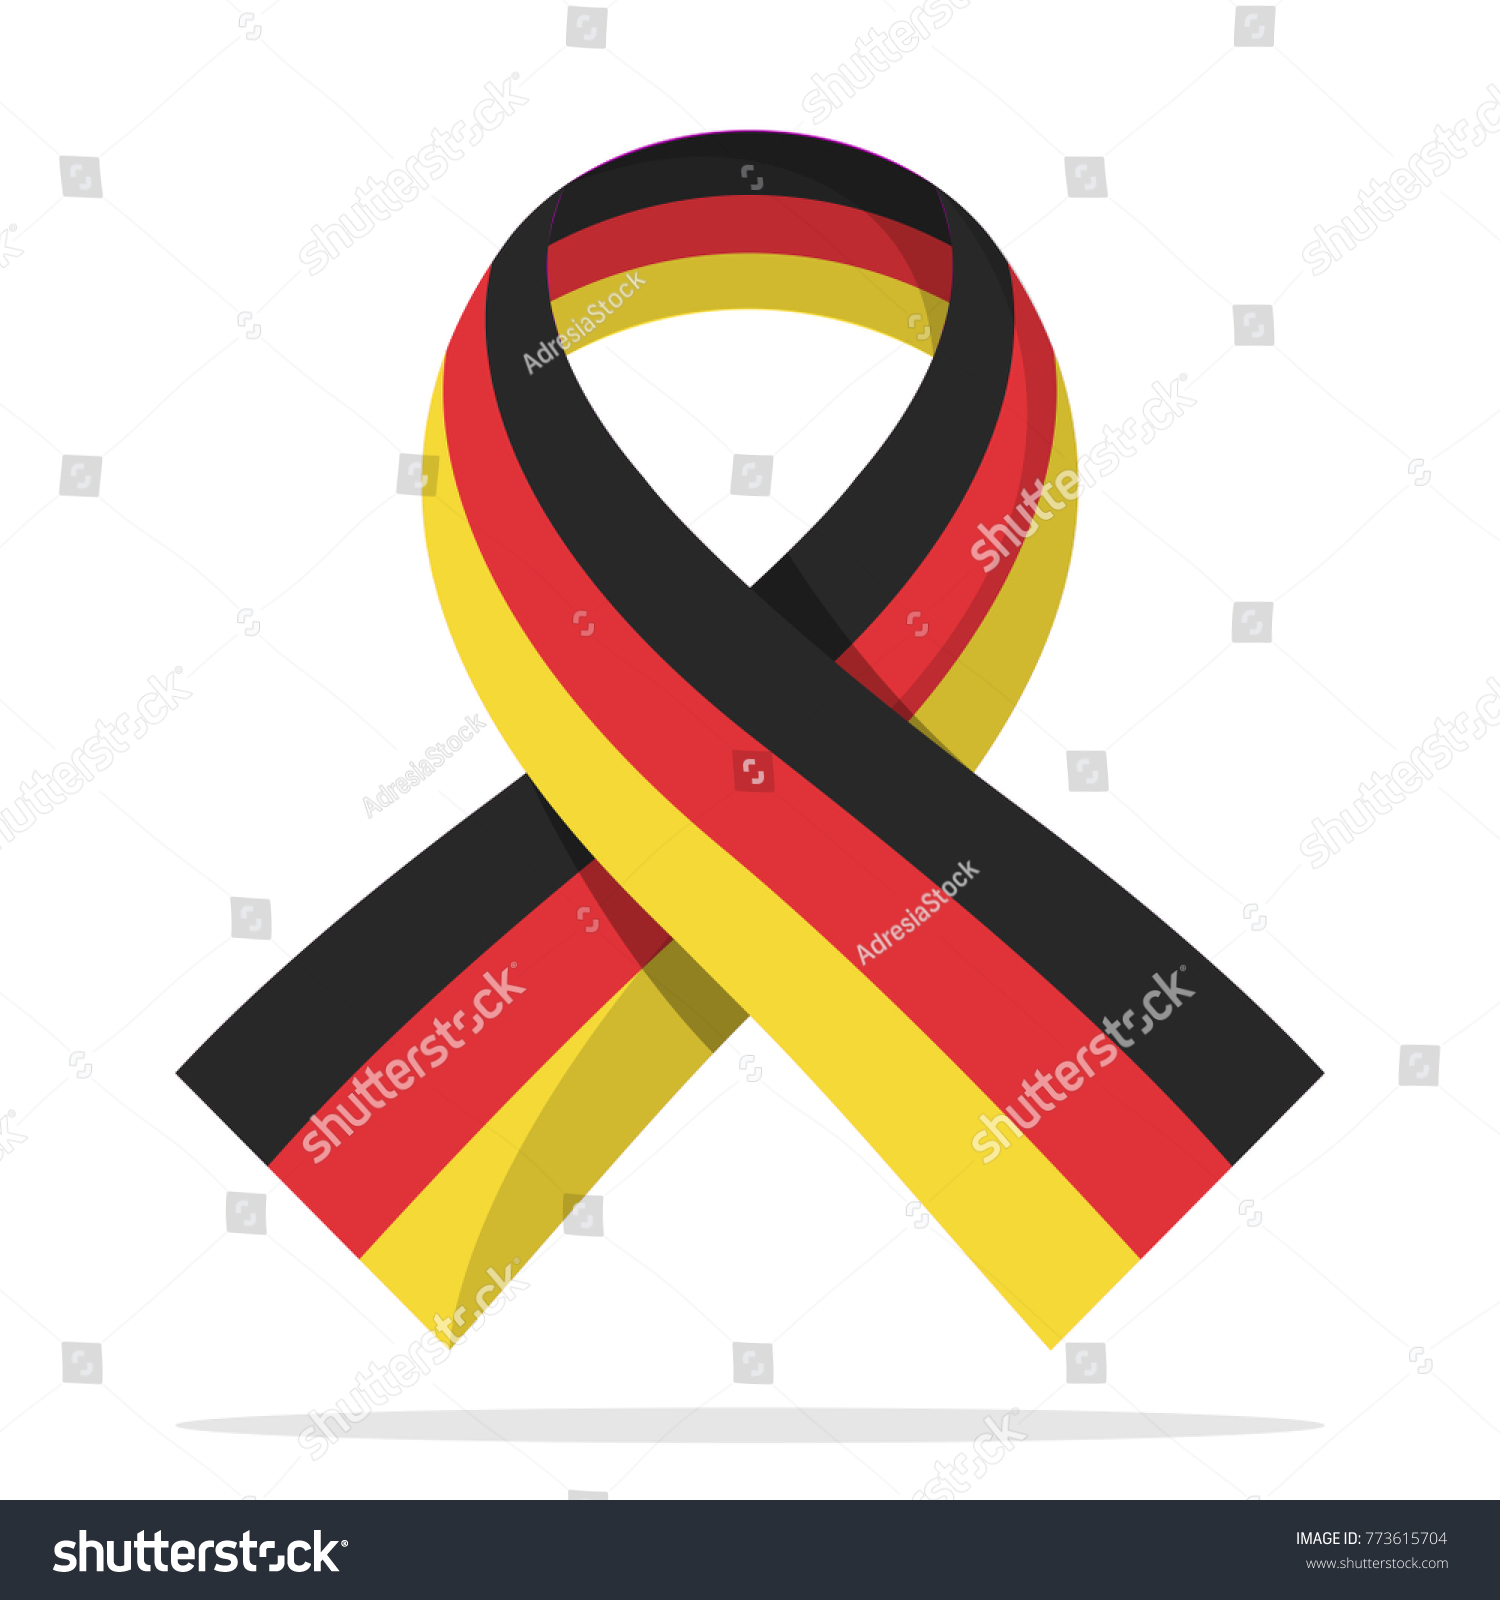 Symbolic icon care cancer aids combination stock vector 773615704 symbolic icon for the care of cancer and aids in combination with the flag of german buycottarizona